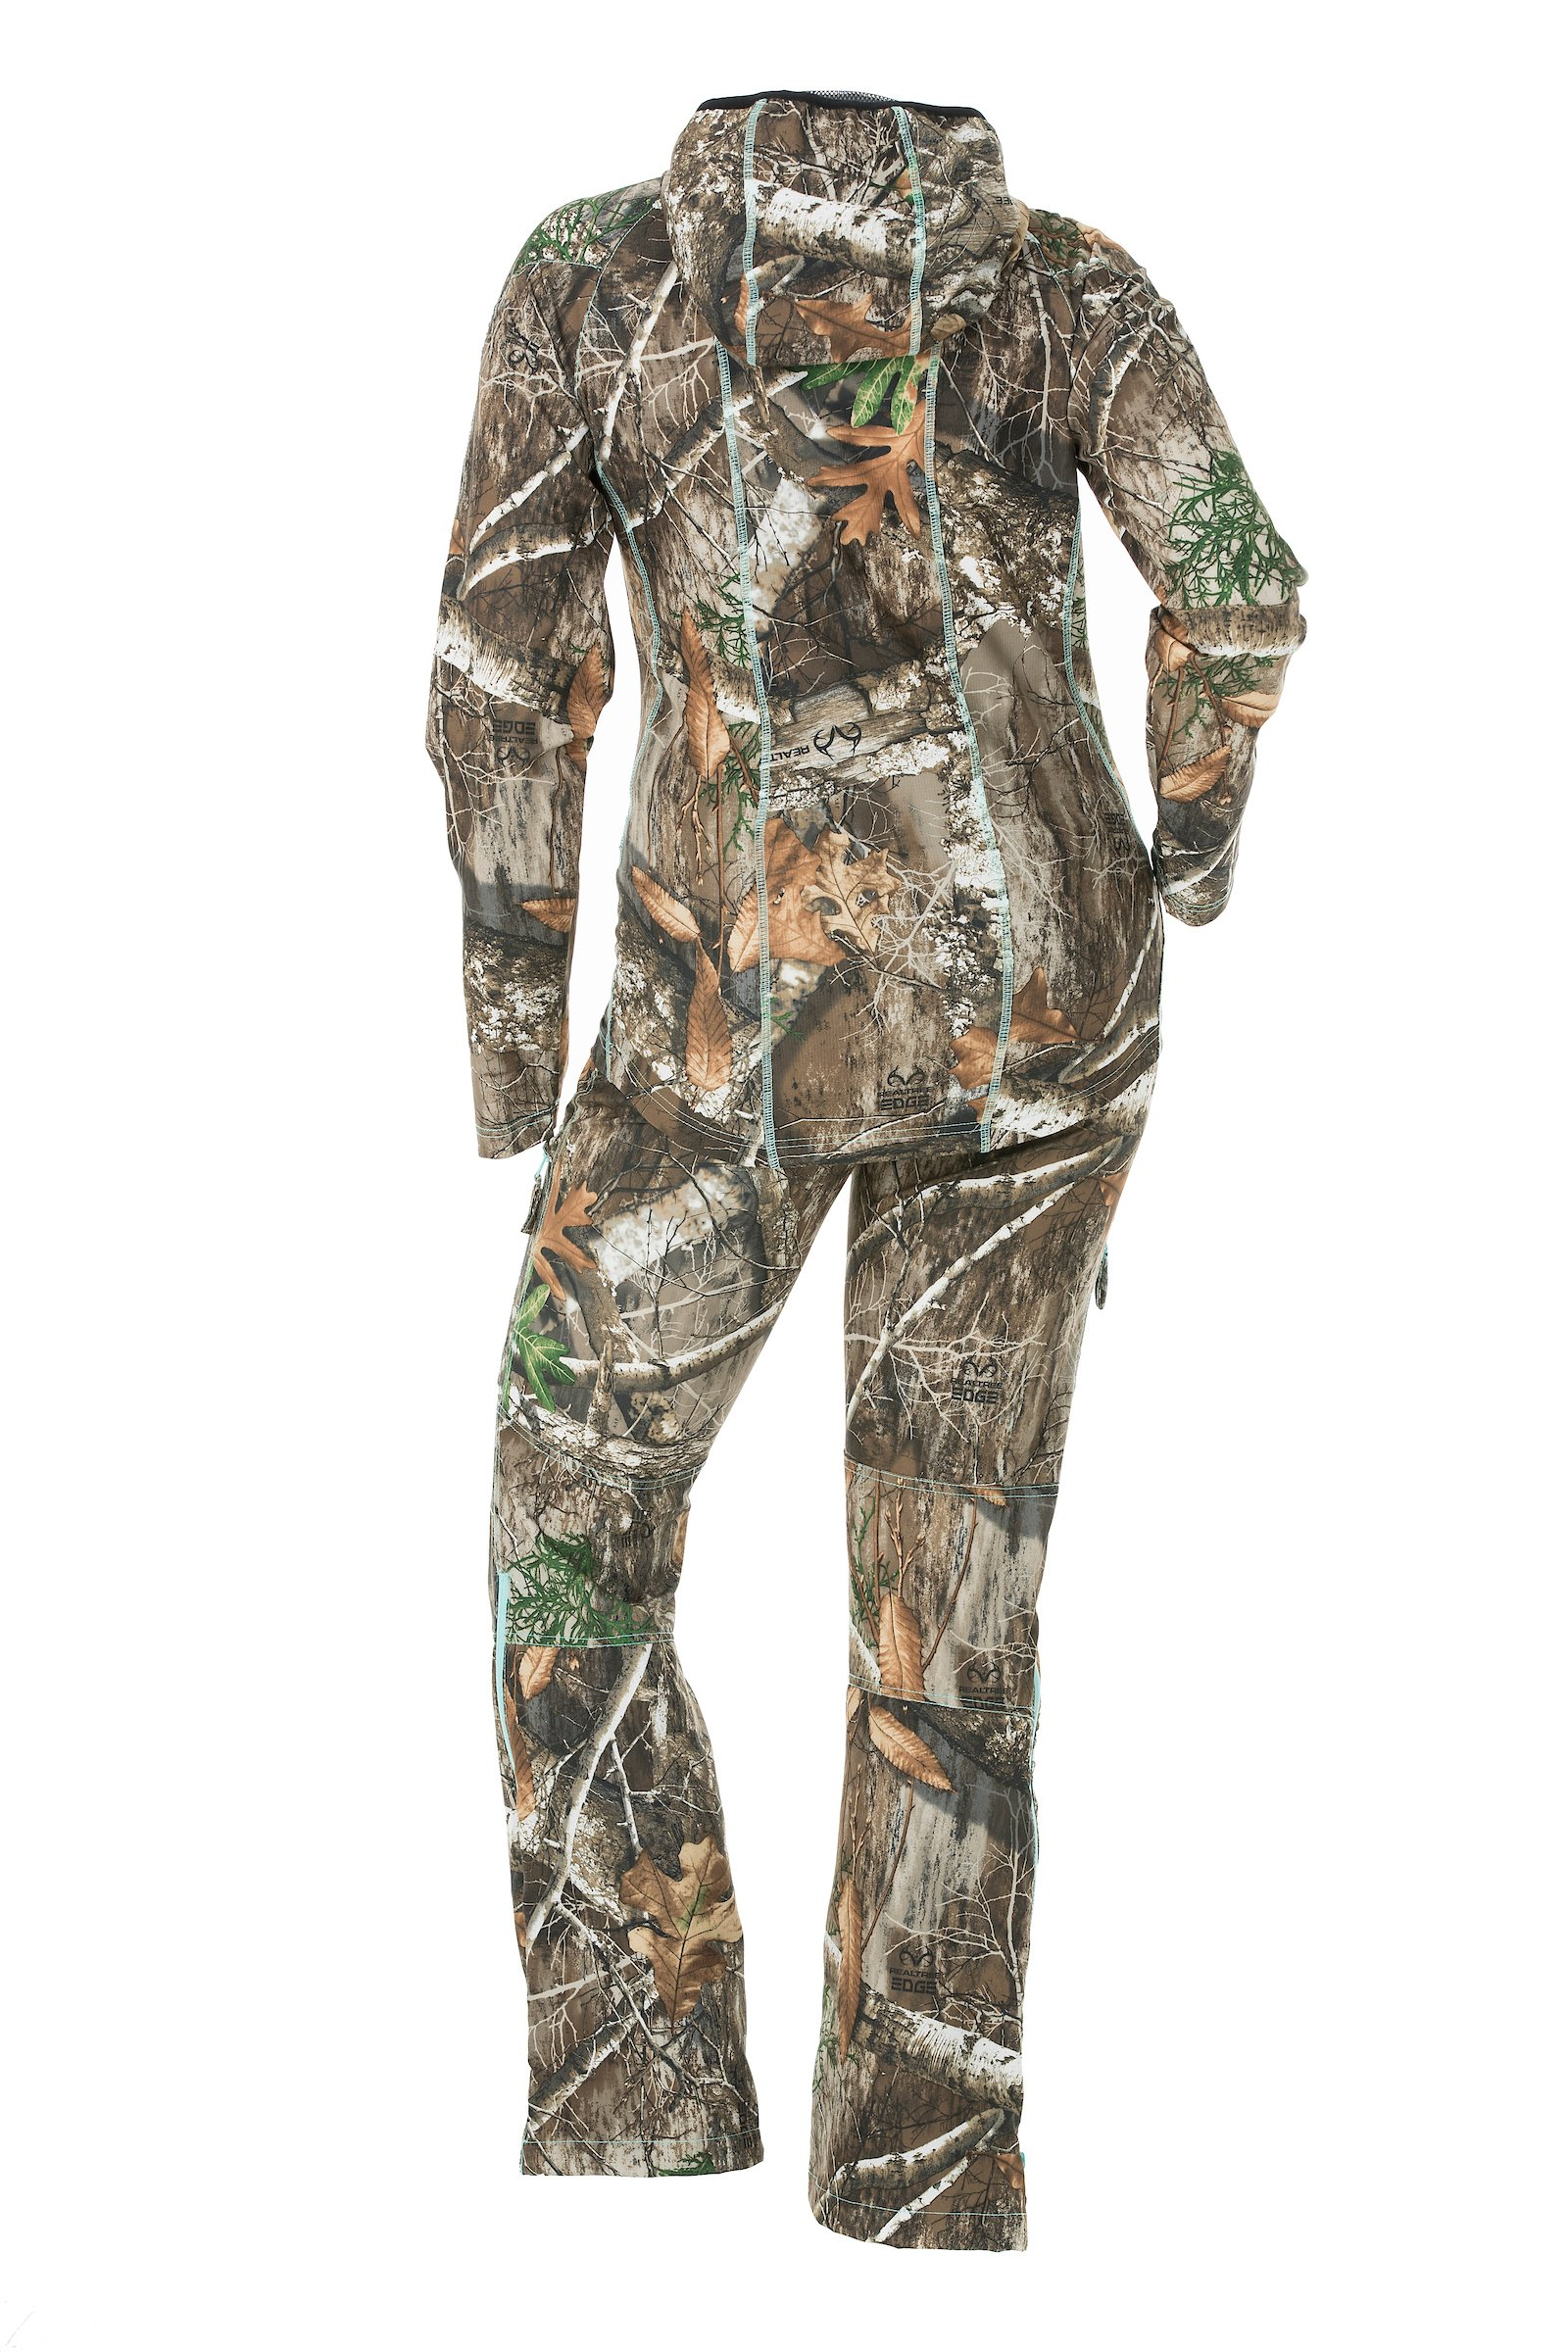 DSG Outerwear Women's Ultra-Lightweight Bexley Ripstop Tech Shirt with Realtree Camo Edge (X-Large) by DSG Outerwear